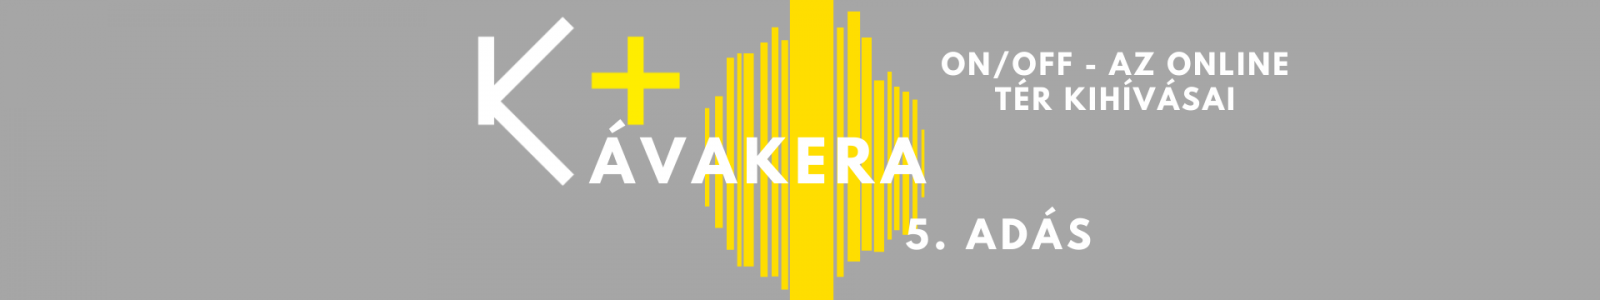 Kávakera - ON-OFF